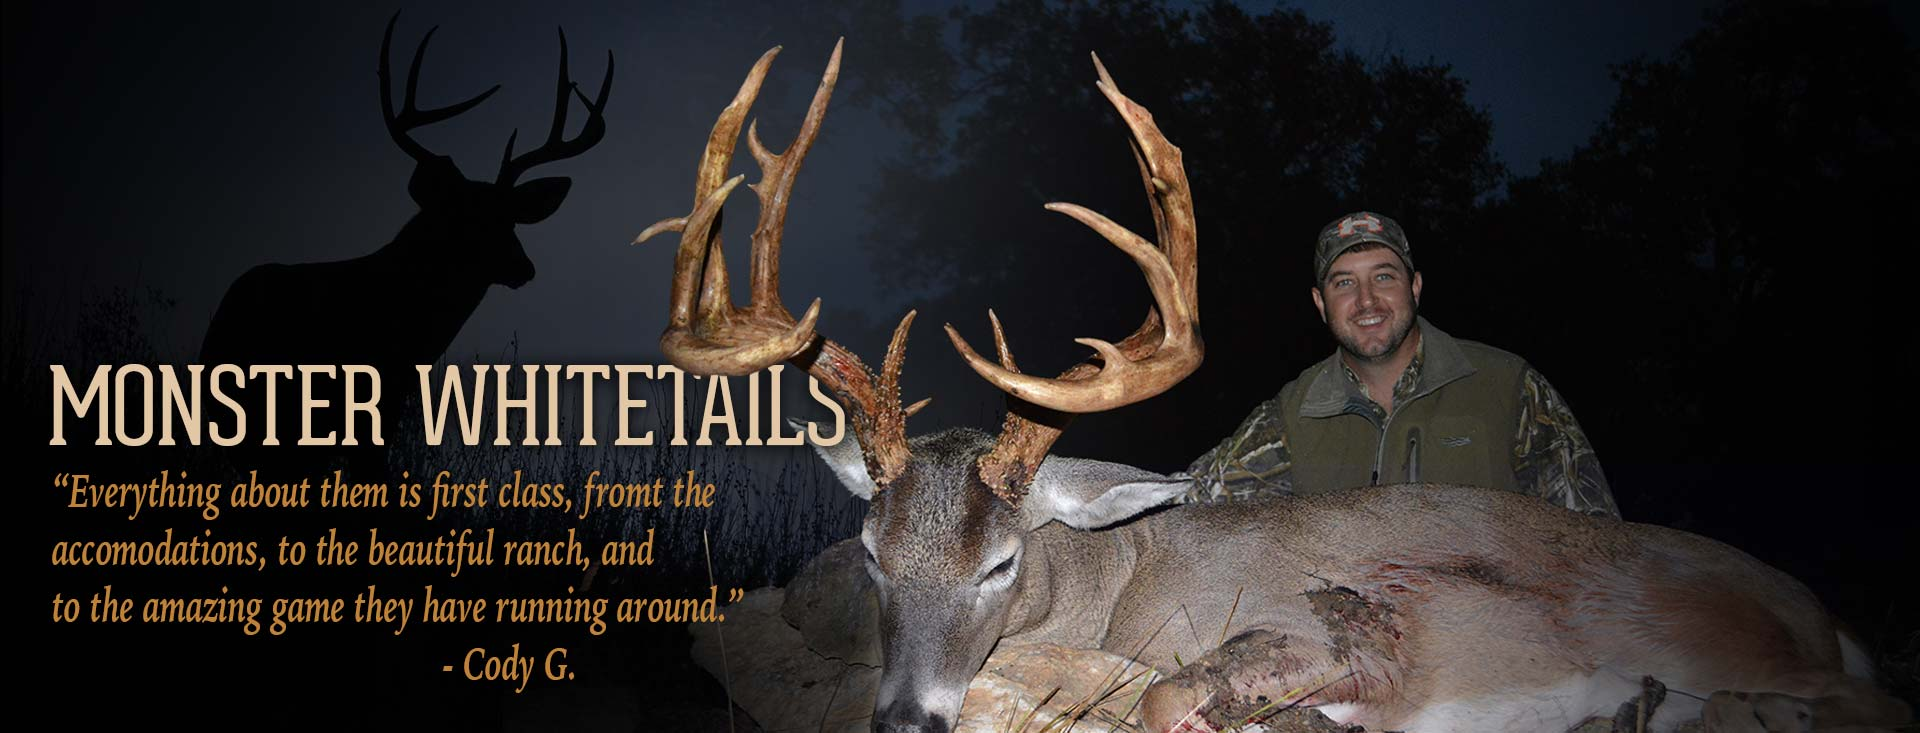 Monster Texas Whitetails